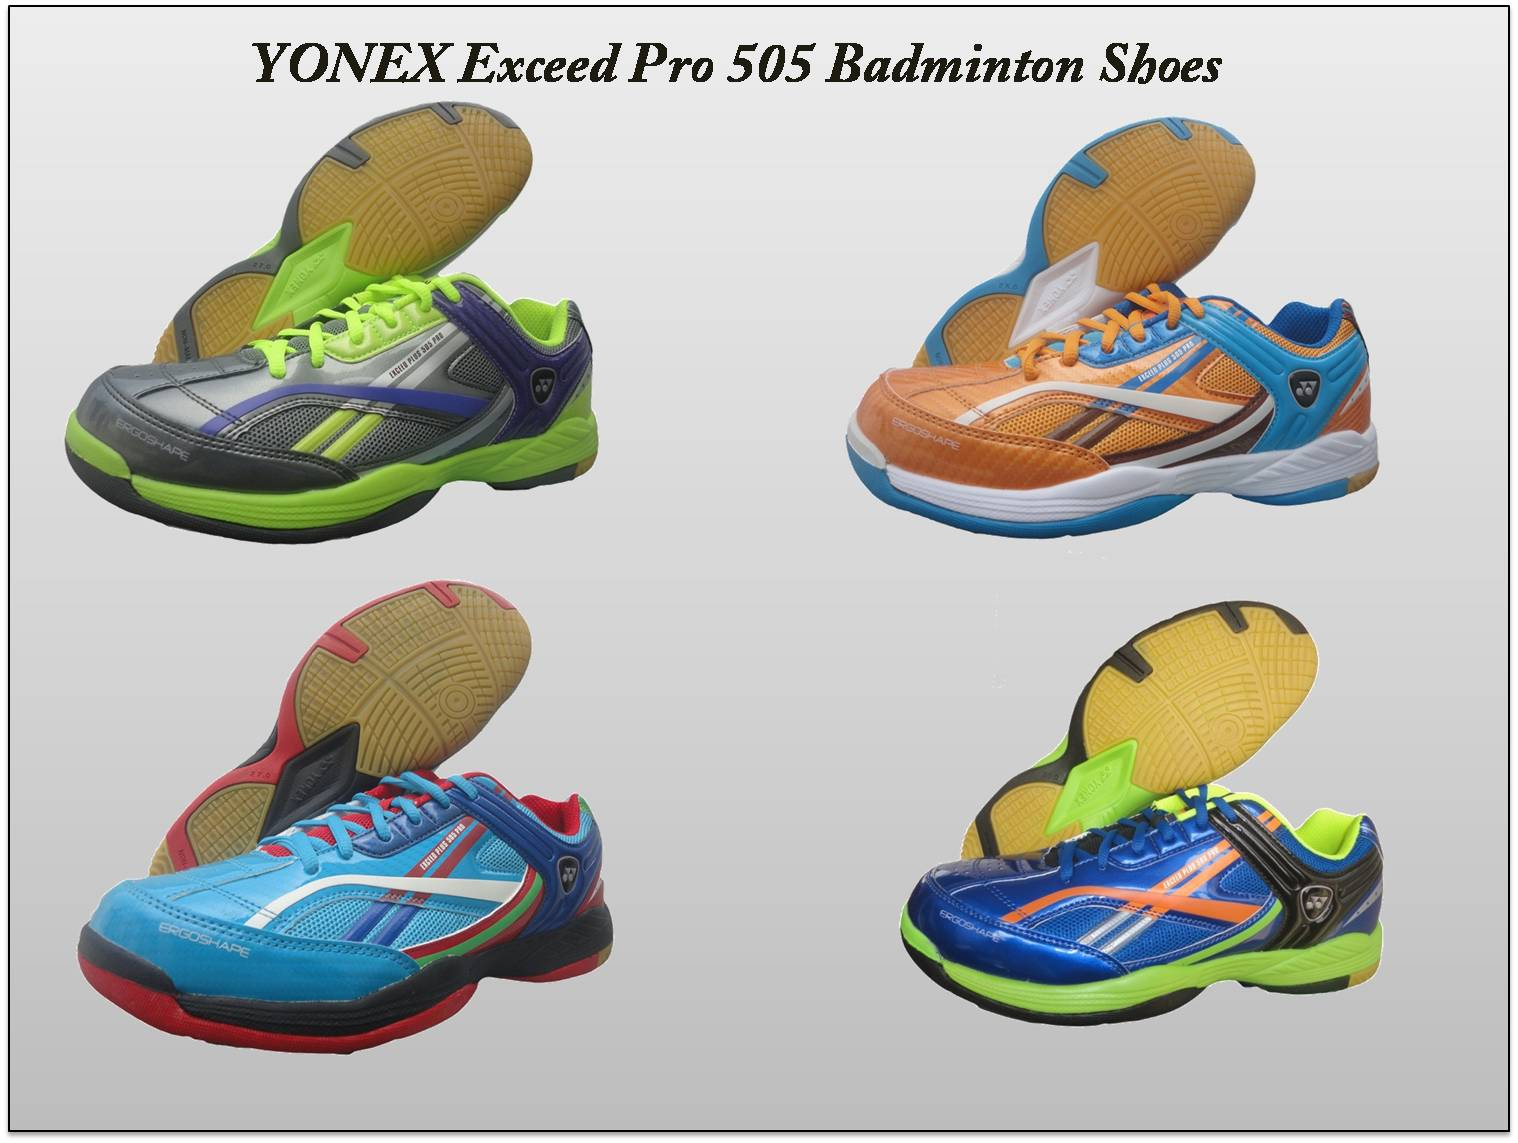 YONEX Exceed Pro 505 Badminton Shoes fround view